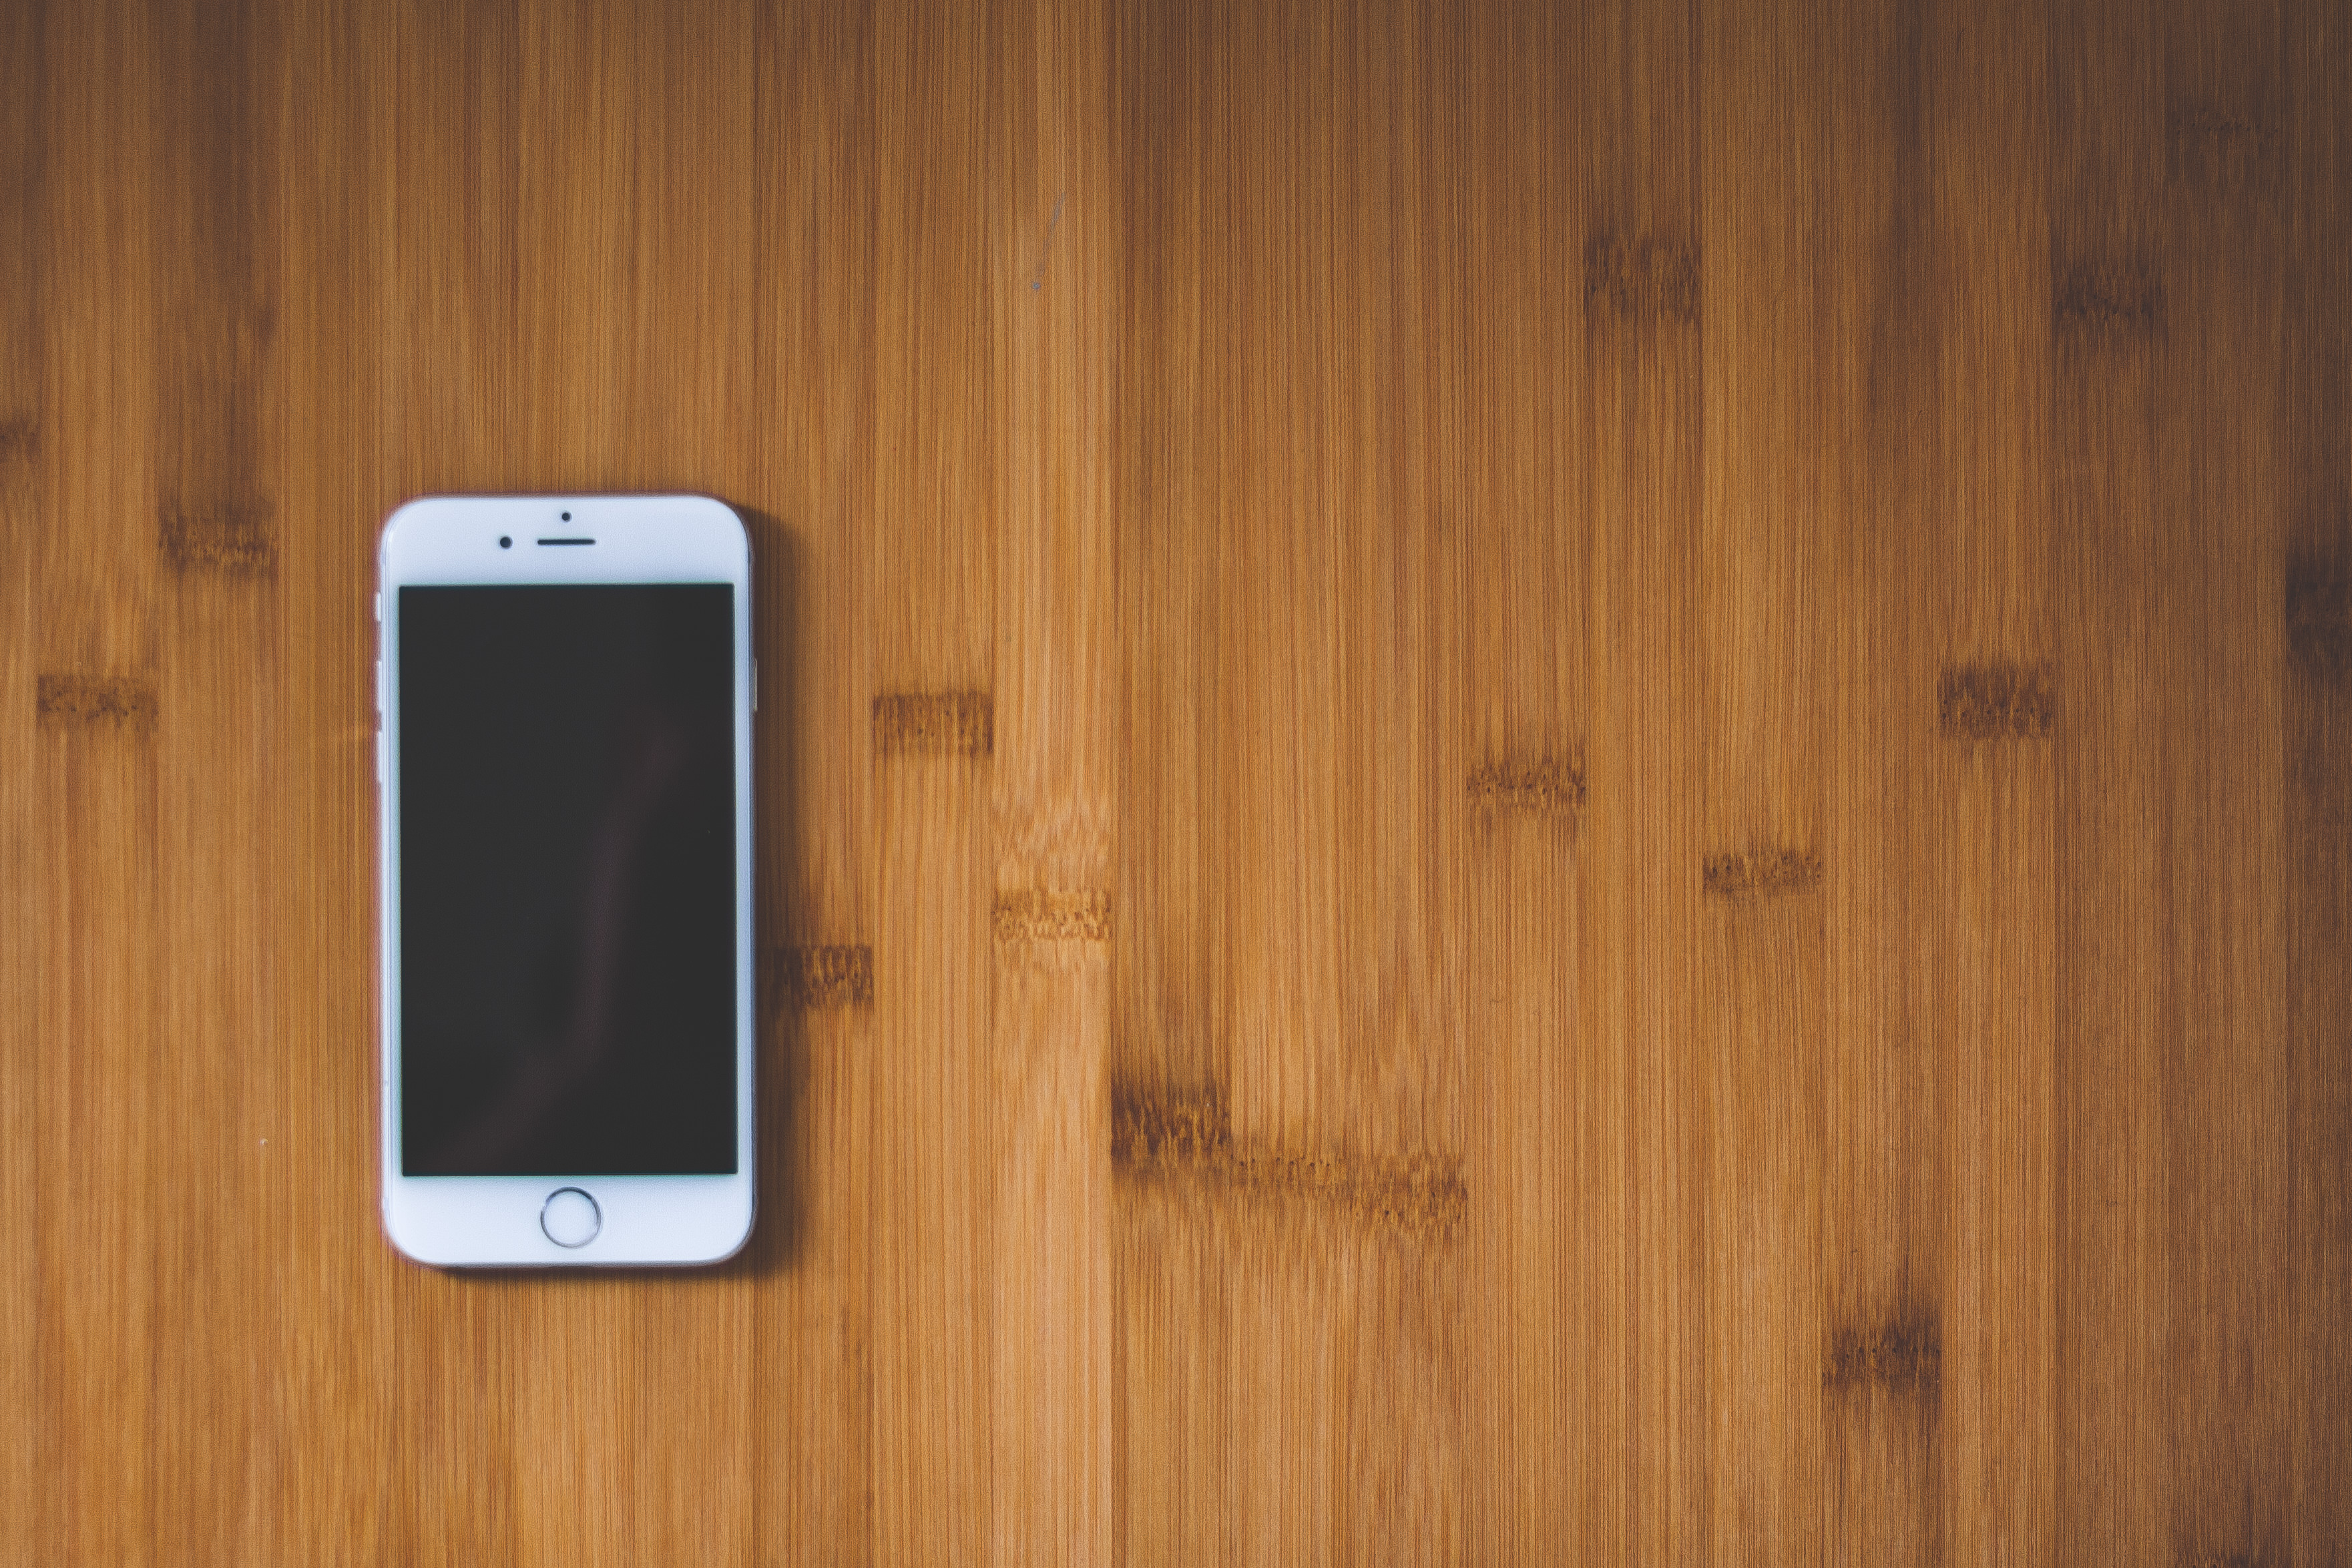 Beautiful Wallpapers For Iphone 6 Plus Silver Iphone 6 On Brown Wooden Surface 183 Free Stock Photo